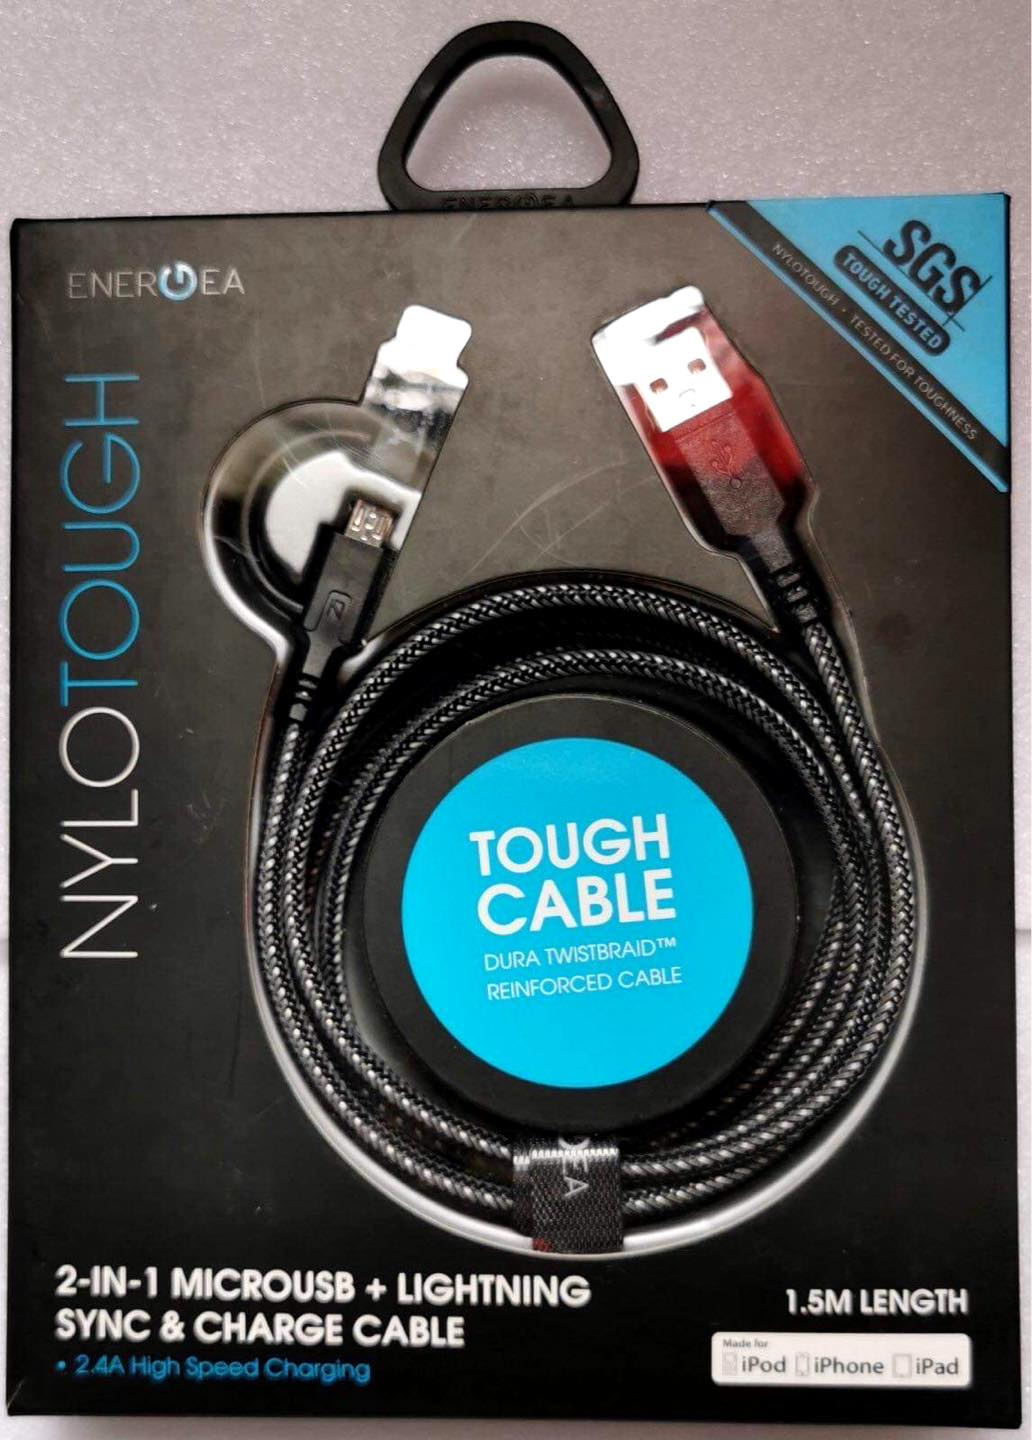 Energea NyloTouch 2-in-1 MICROUSB + LIGHTNING SYNC & CHARGE CABLE